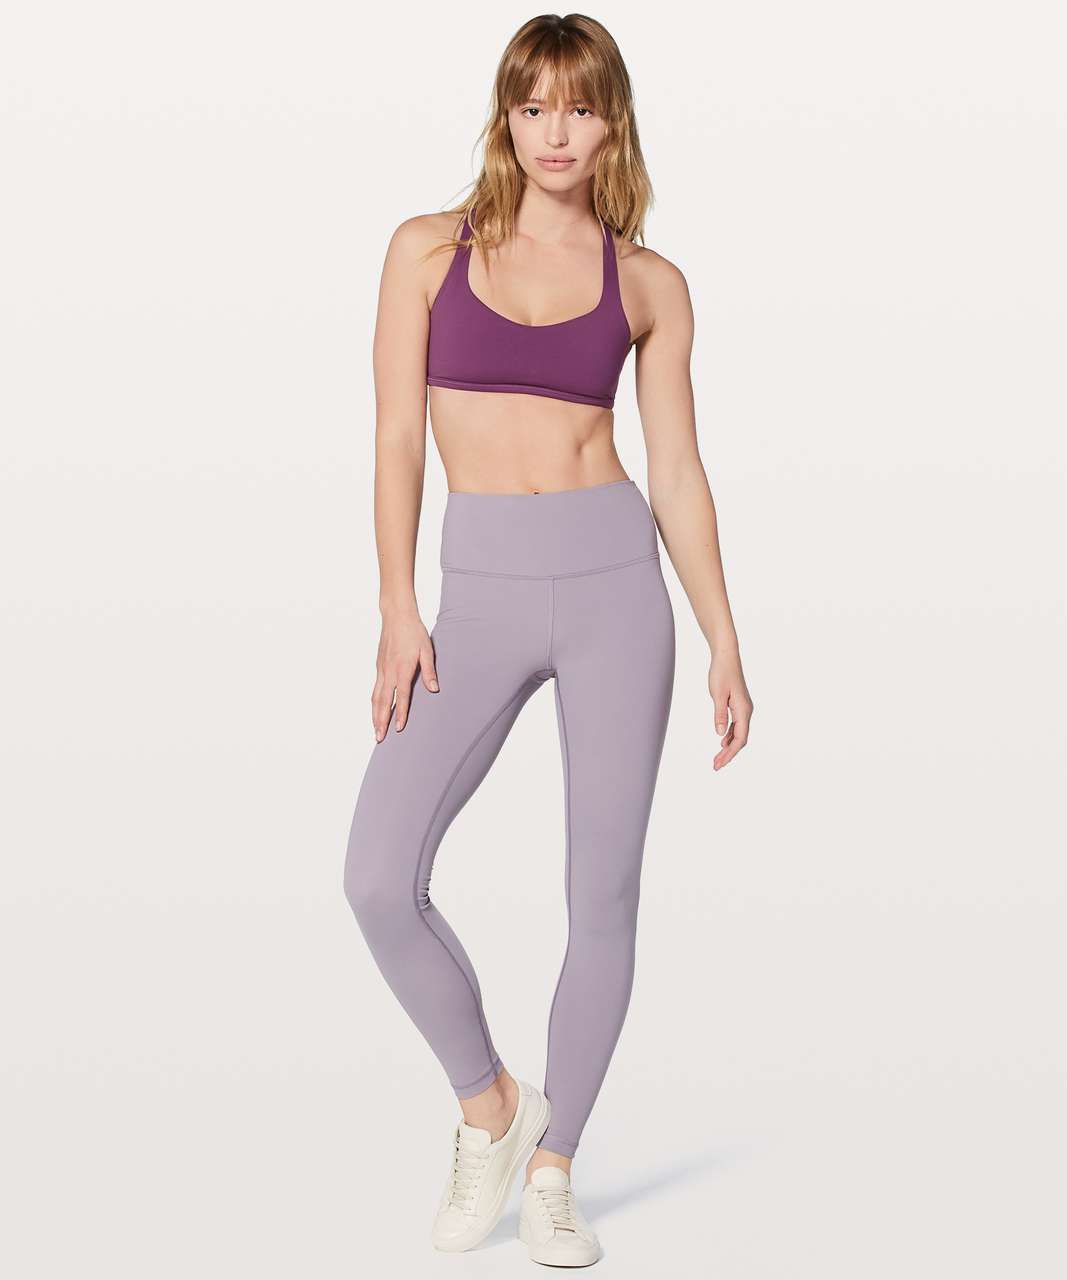 Lululemon Free To Be Bra (Wild) - Dark Mystic